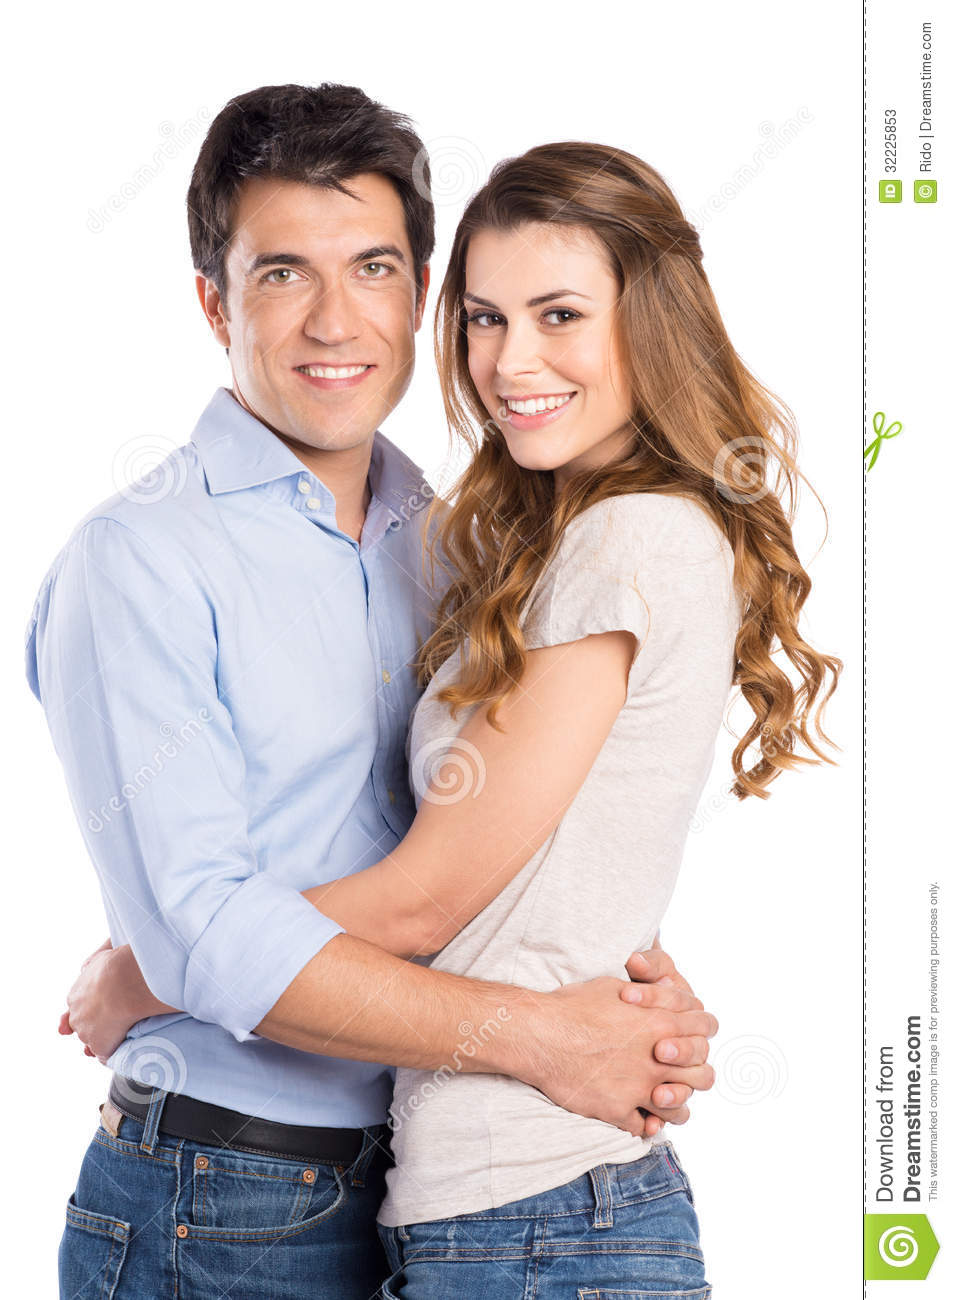 Download Retrato Do Aperto Novo Dos Pares Imagem de Stock - Imagem de holding, embracing: 32225853